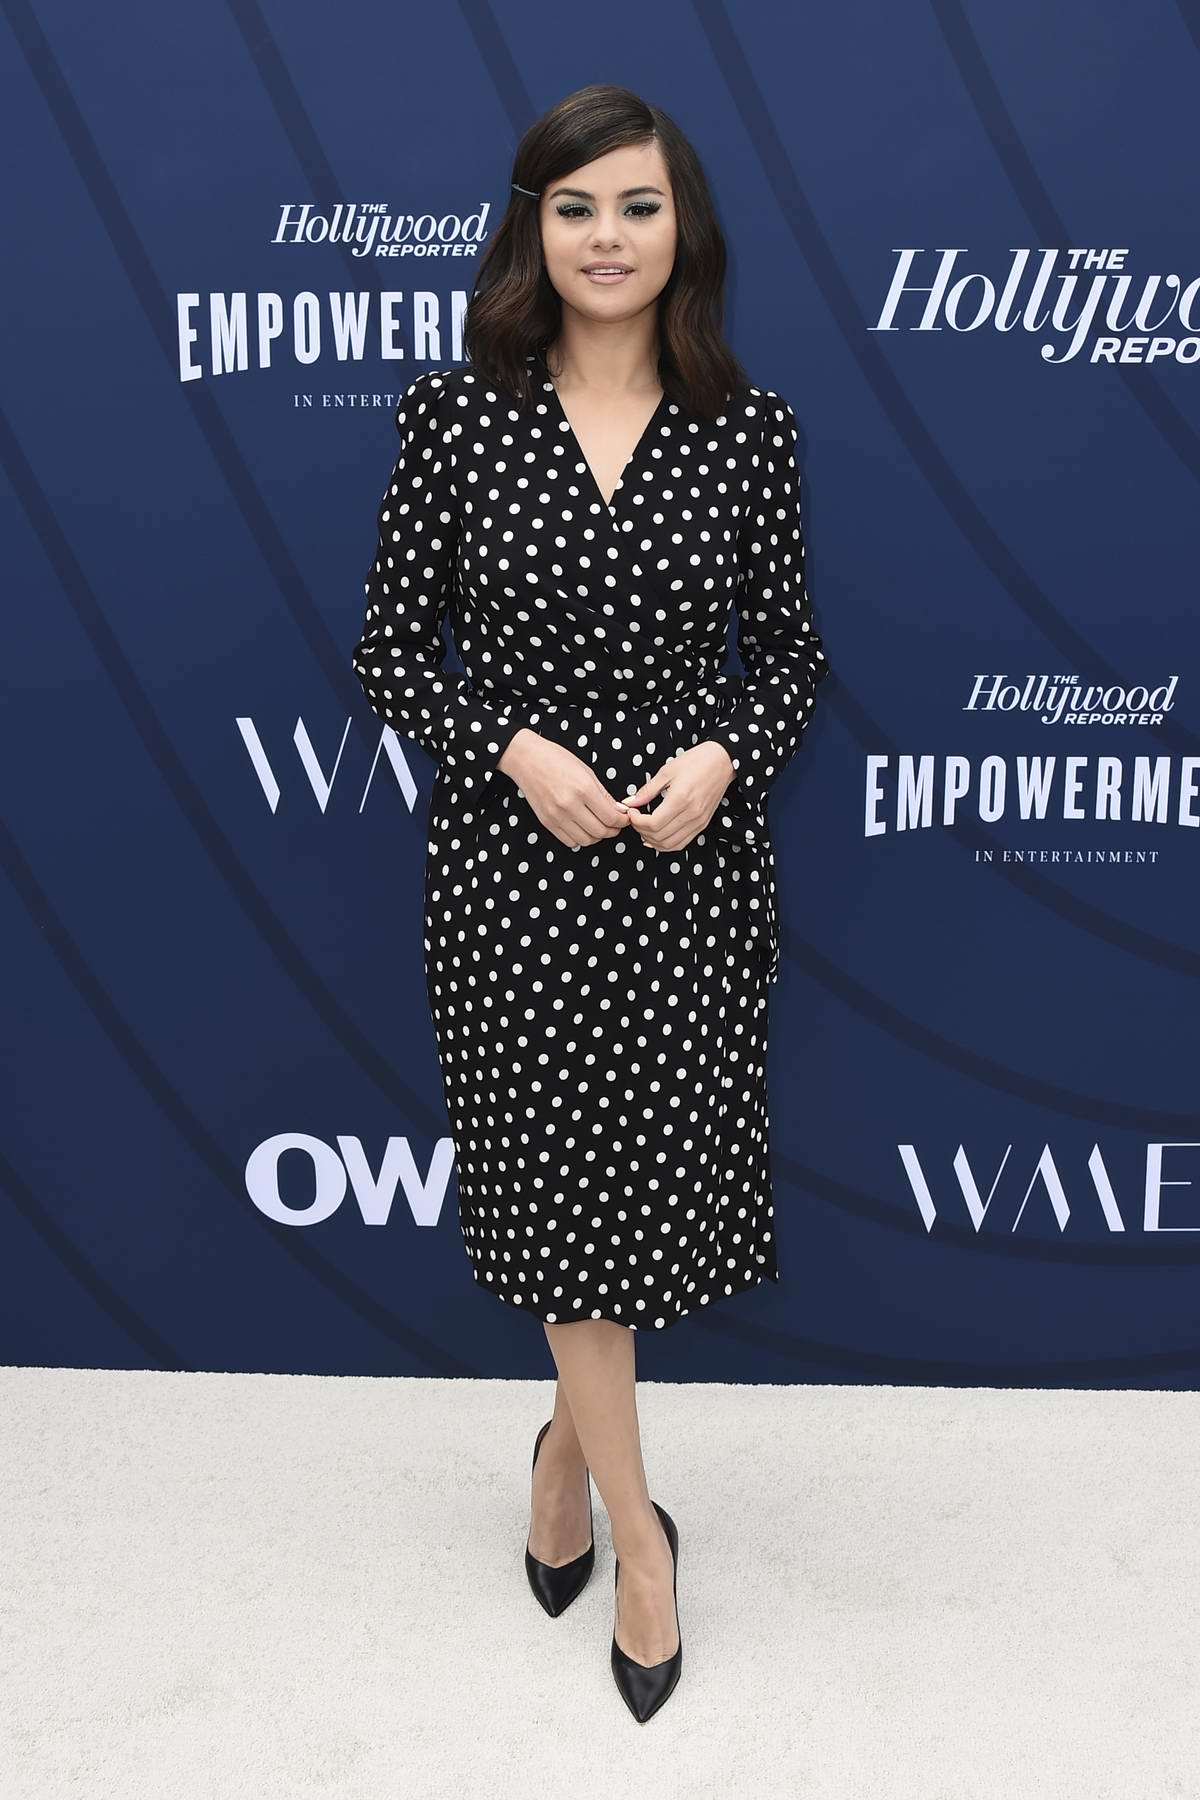 Selena Gomez attends The Hollywood Reporter's Empowerment In Entertainment Event 2019 at Milk Studios in Los Angeles